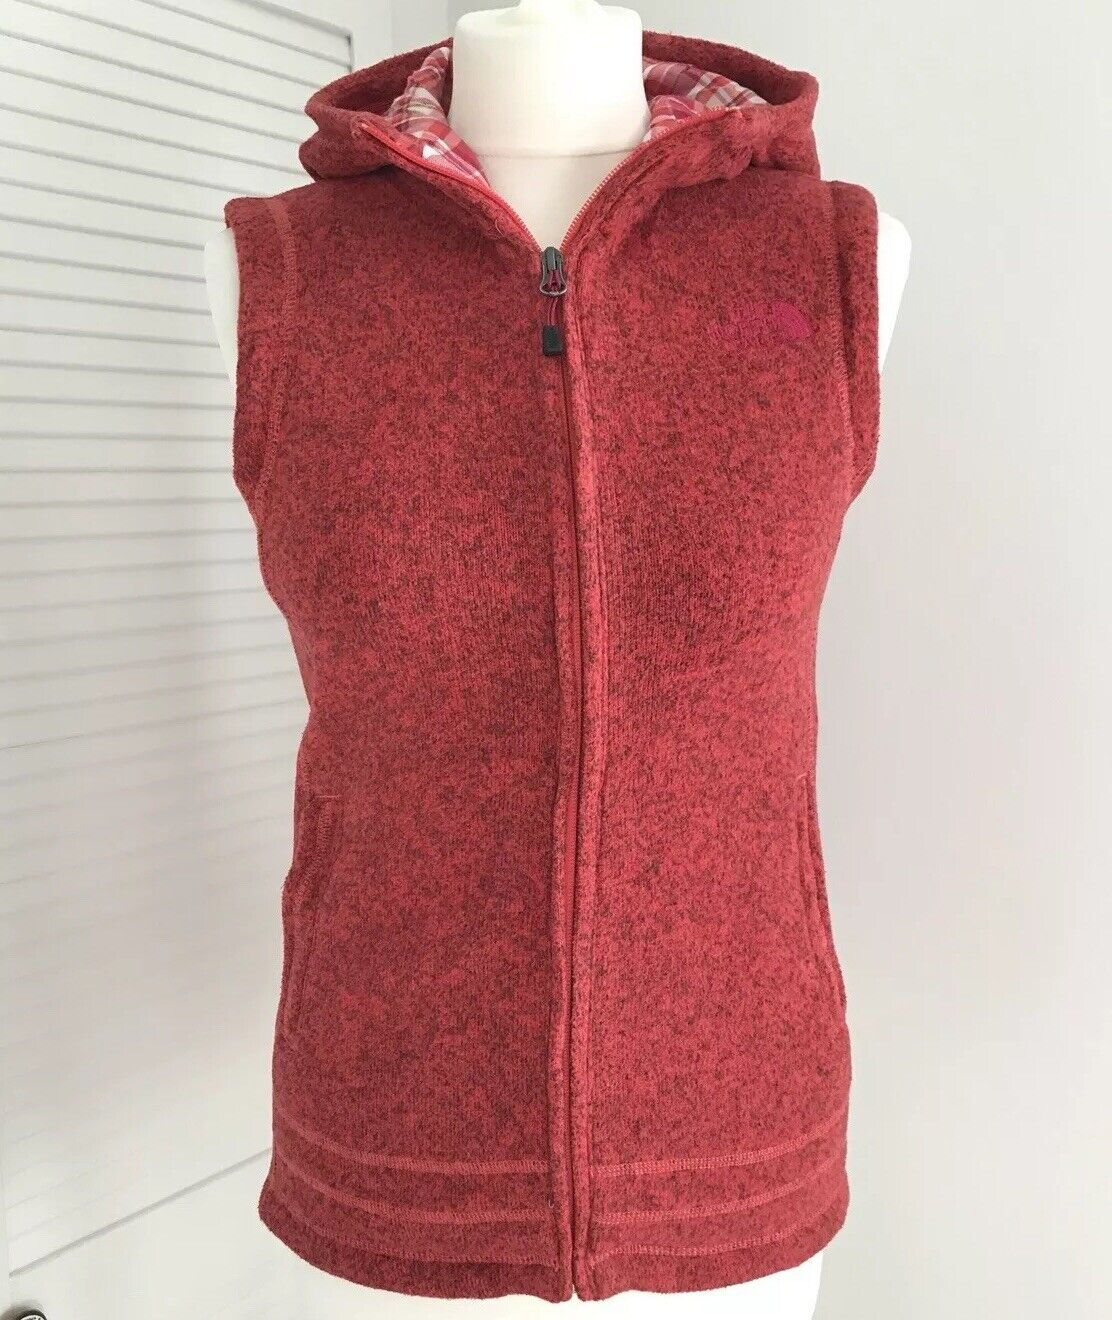 9a65b166acdcf7 The North Face Gilet Novelty Vest Sleeveless Marl rot Rosa damen Small  Crescent nvyazy2111-Mäntel & Westen